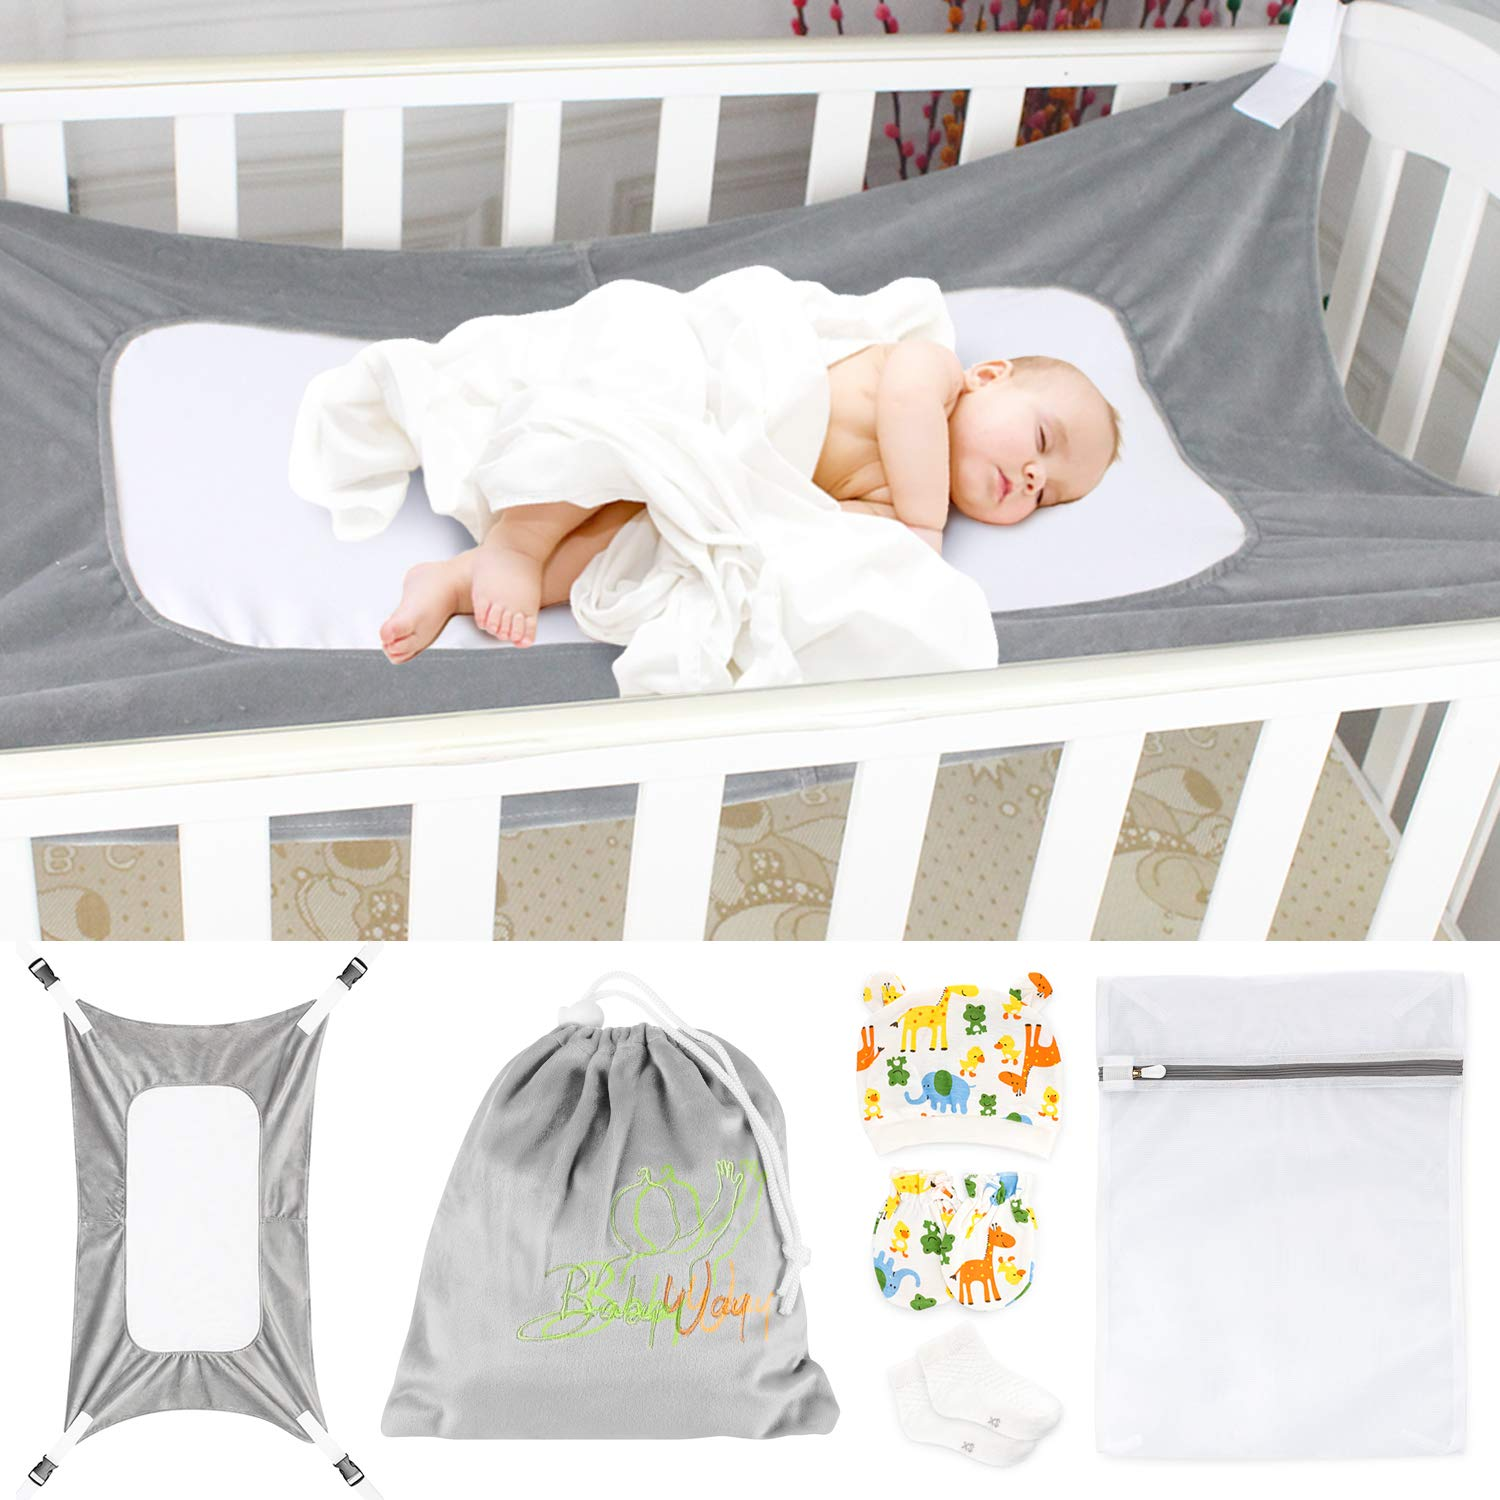 Baby Crib Hammock, Like Womb, Infant Hammock Bed, Enhanced Safety Features, Very Soft Fabric, Newborn Nursery Bed, Plus BabyWay Gift Bag by The BabyWay